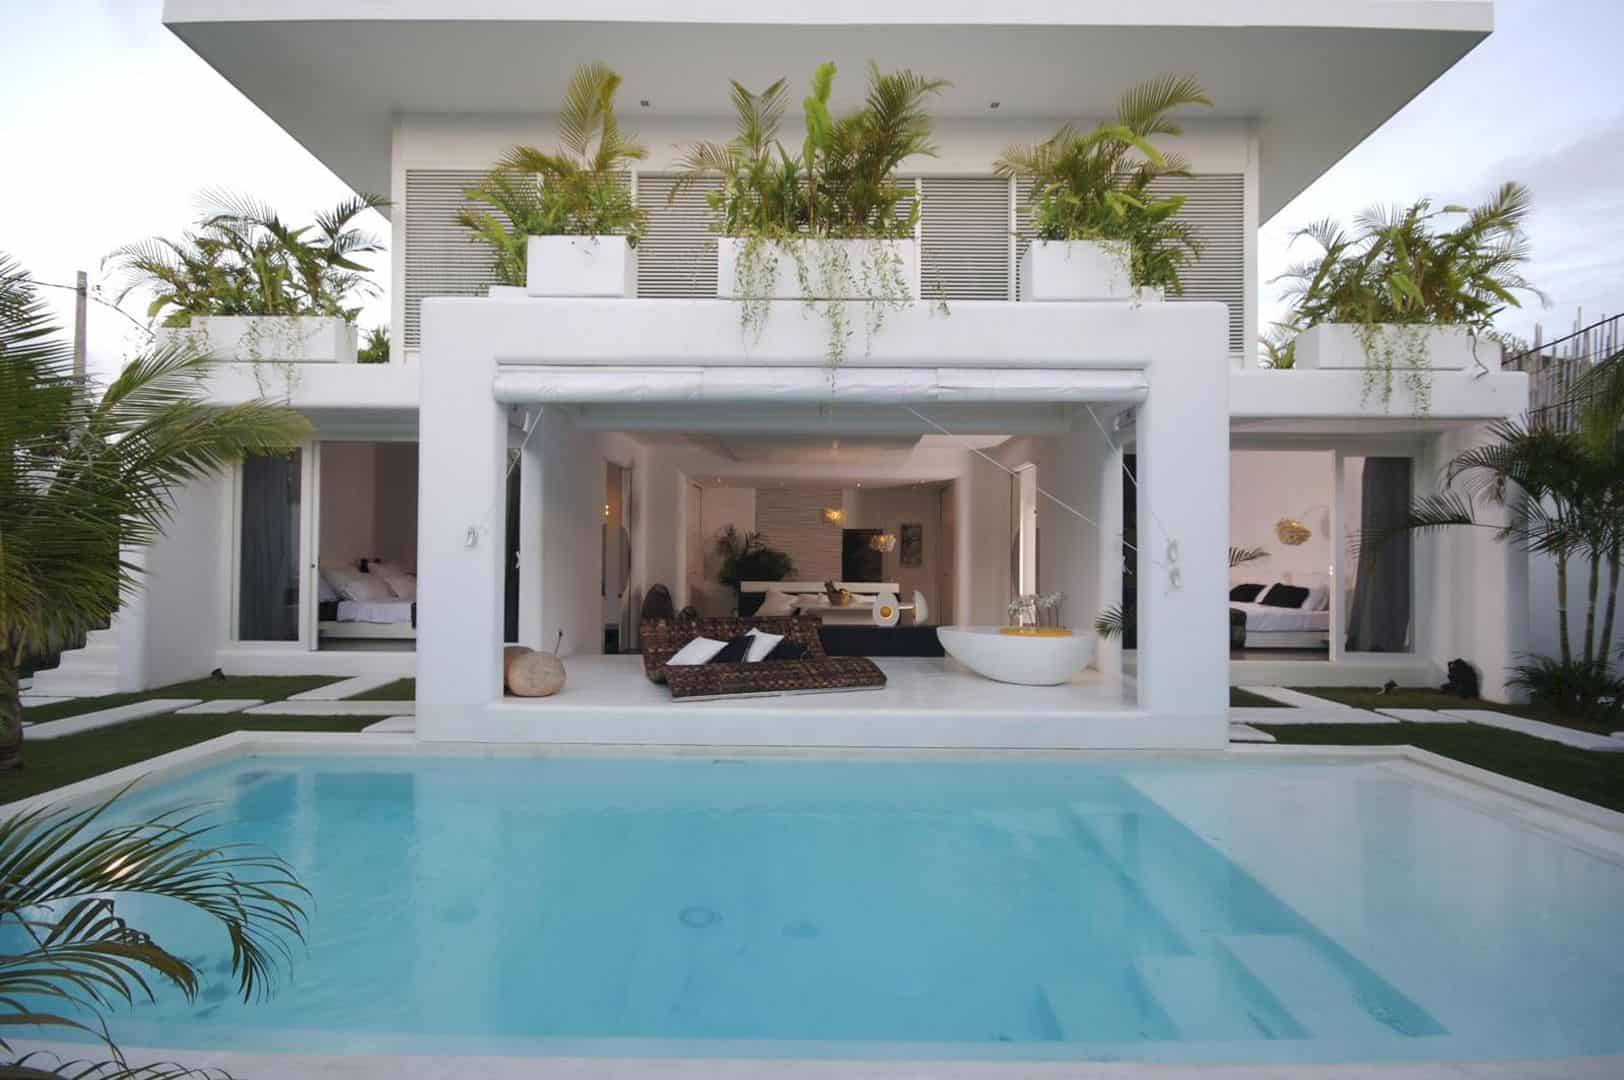 Lovelli Residence Bali: A Mediterranean Villa with Aesthetic Architecture Design